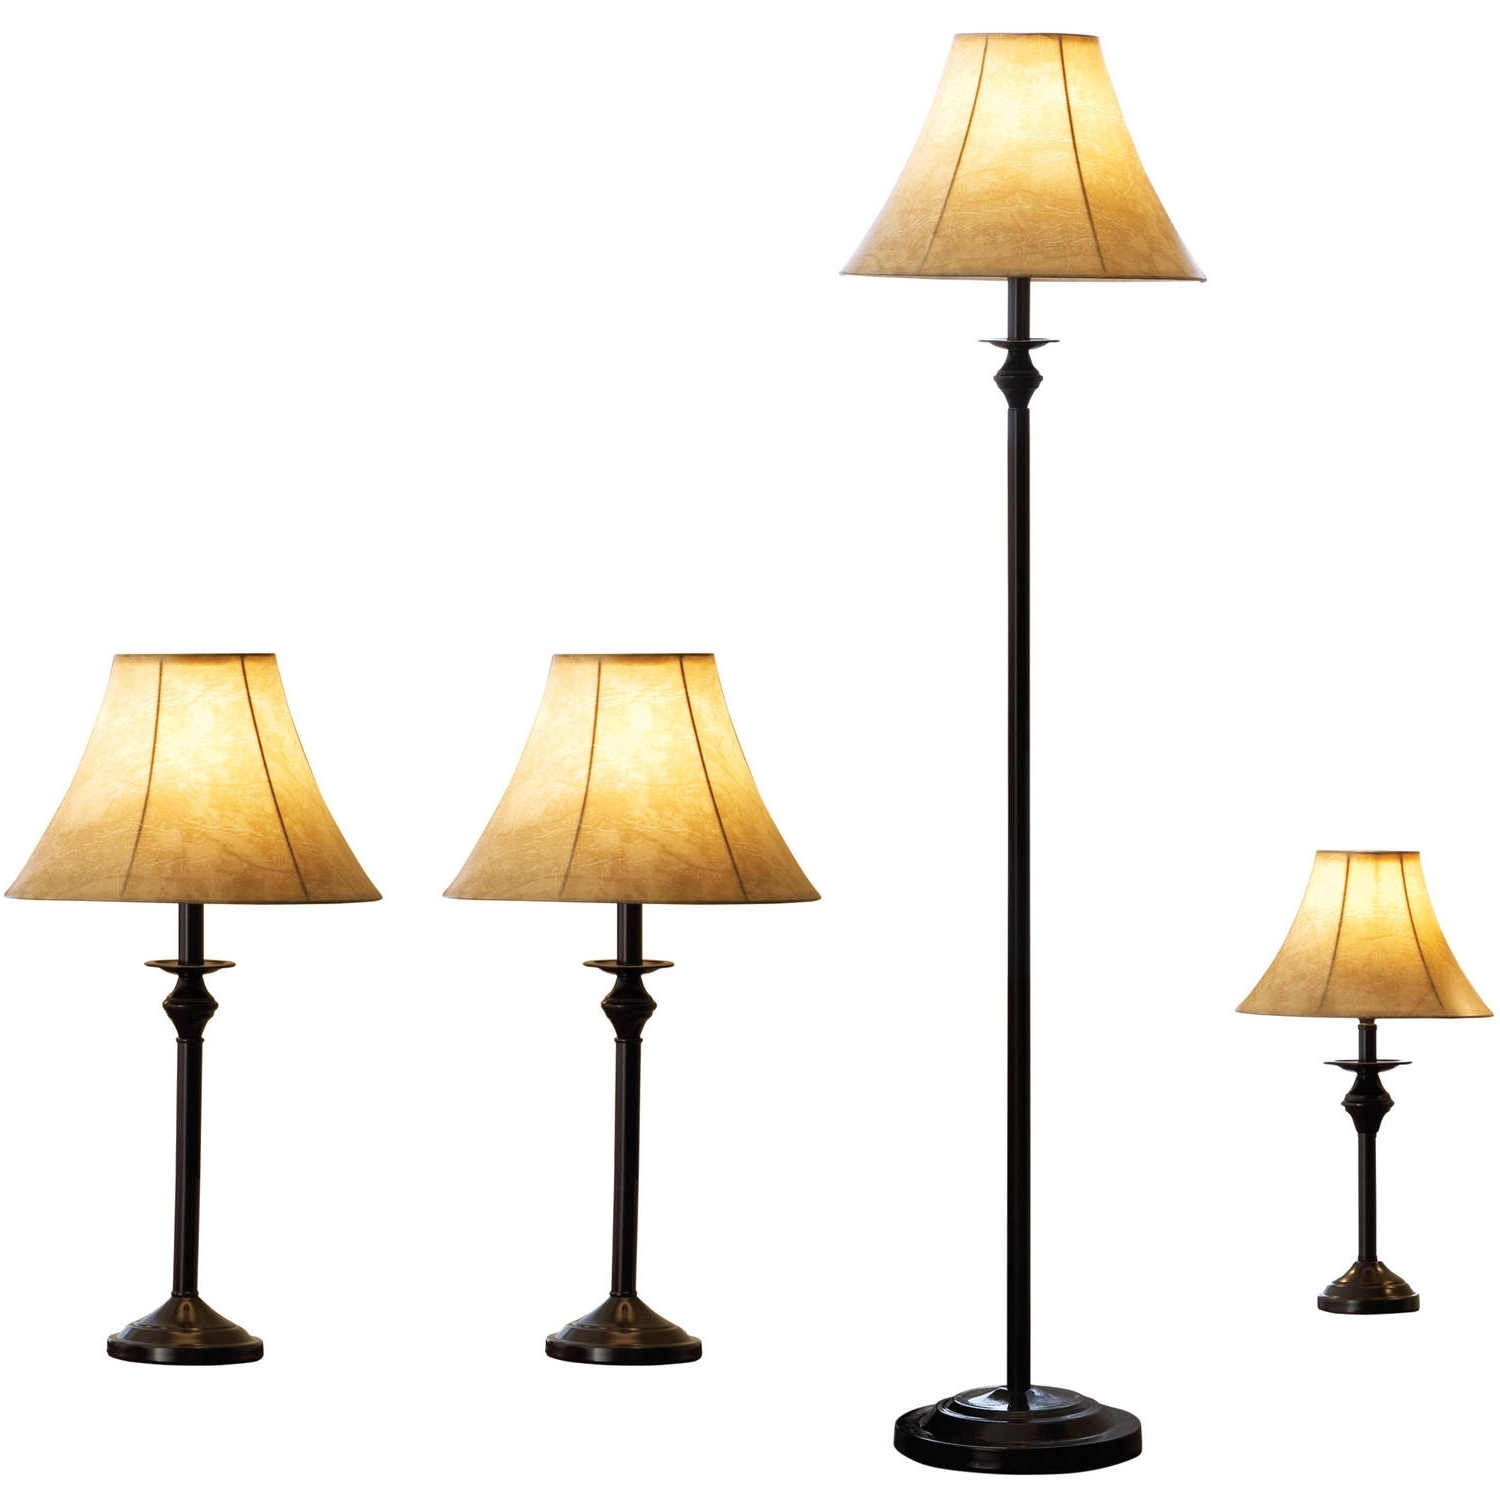 Living Room Table Lamps Sets For Latest Walmart Lamps Floor Small Table Lamp Set Black Friday And (View 7 of 20)